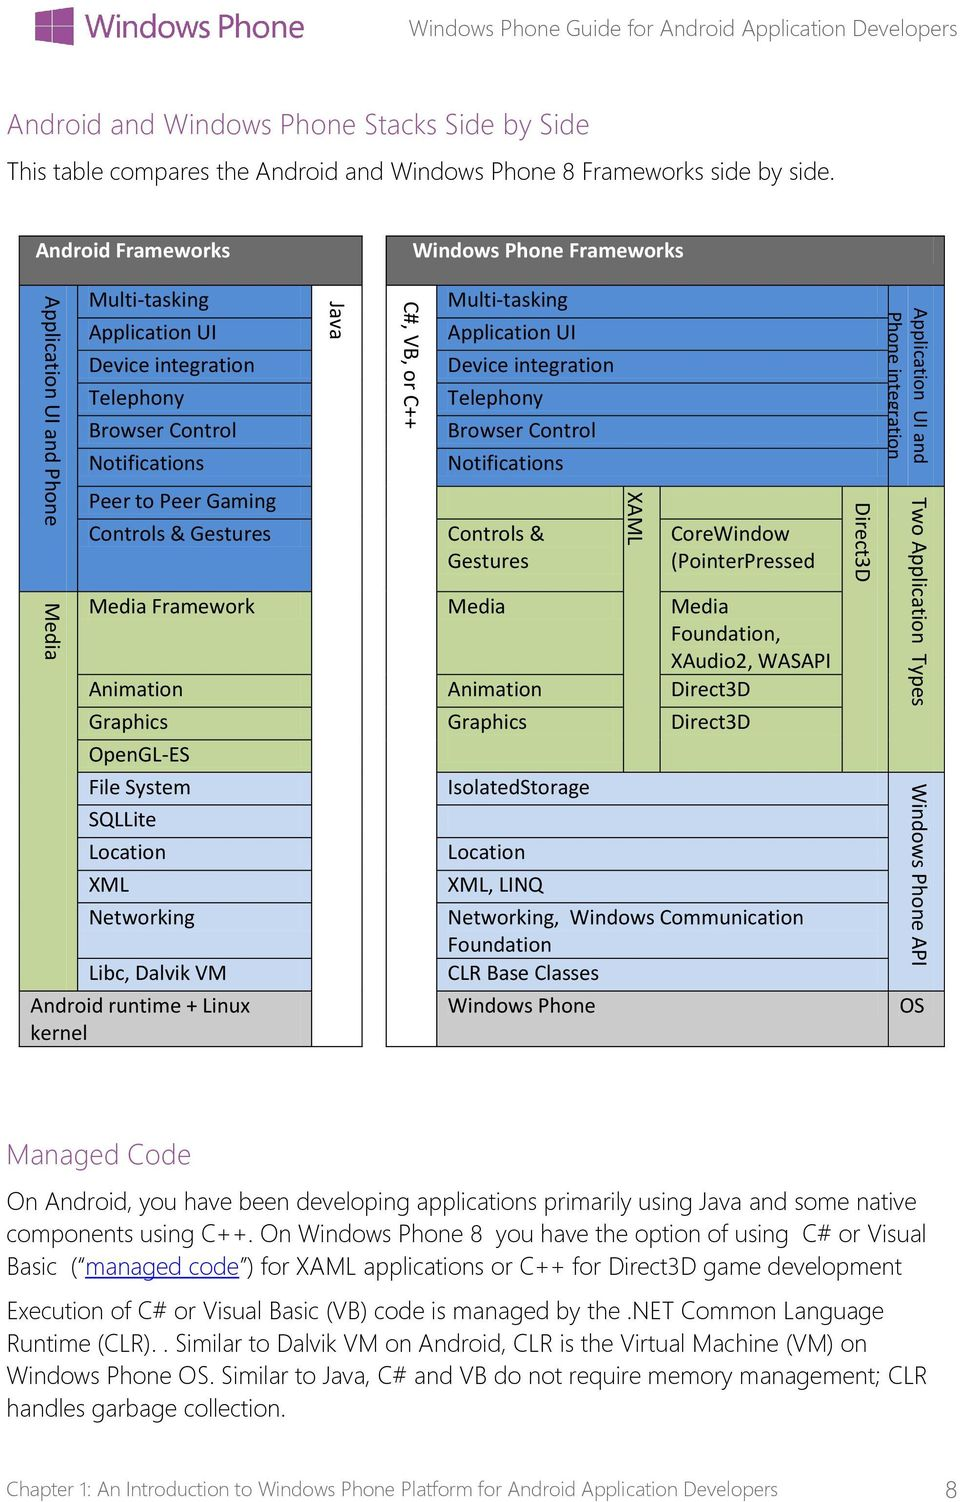 Windows Phone 8 Guide for Android Application Developers - PDF